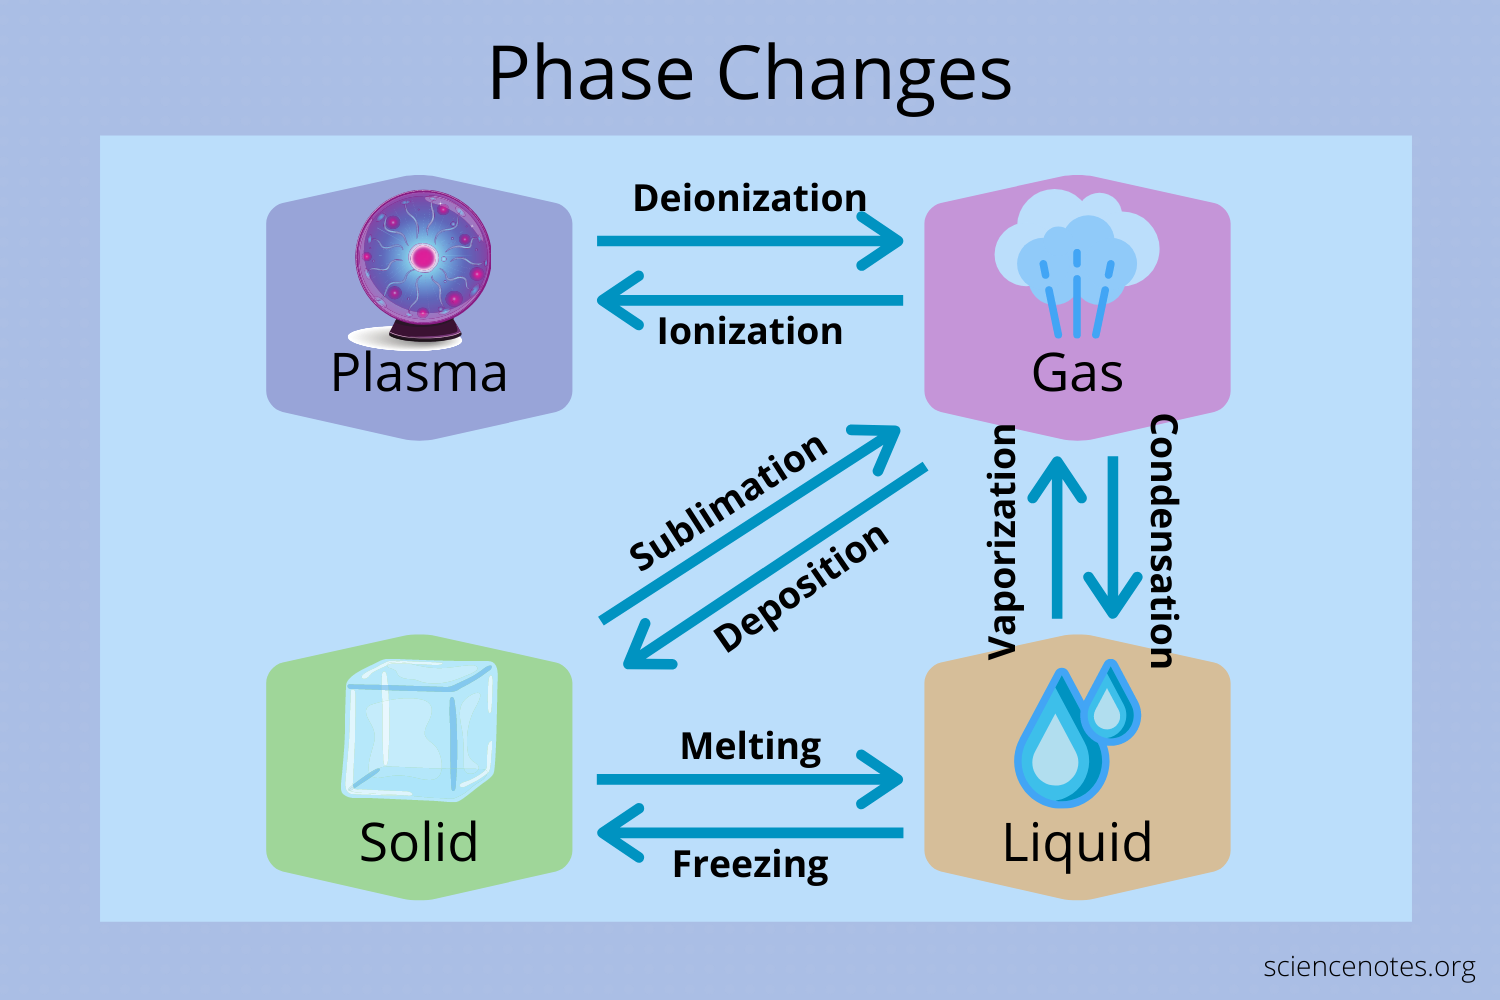 Phase Change Diagram and DefinitionScience Notes